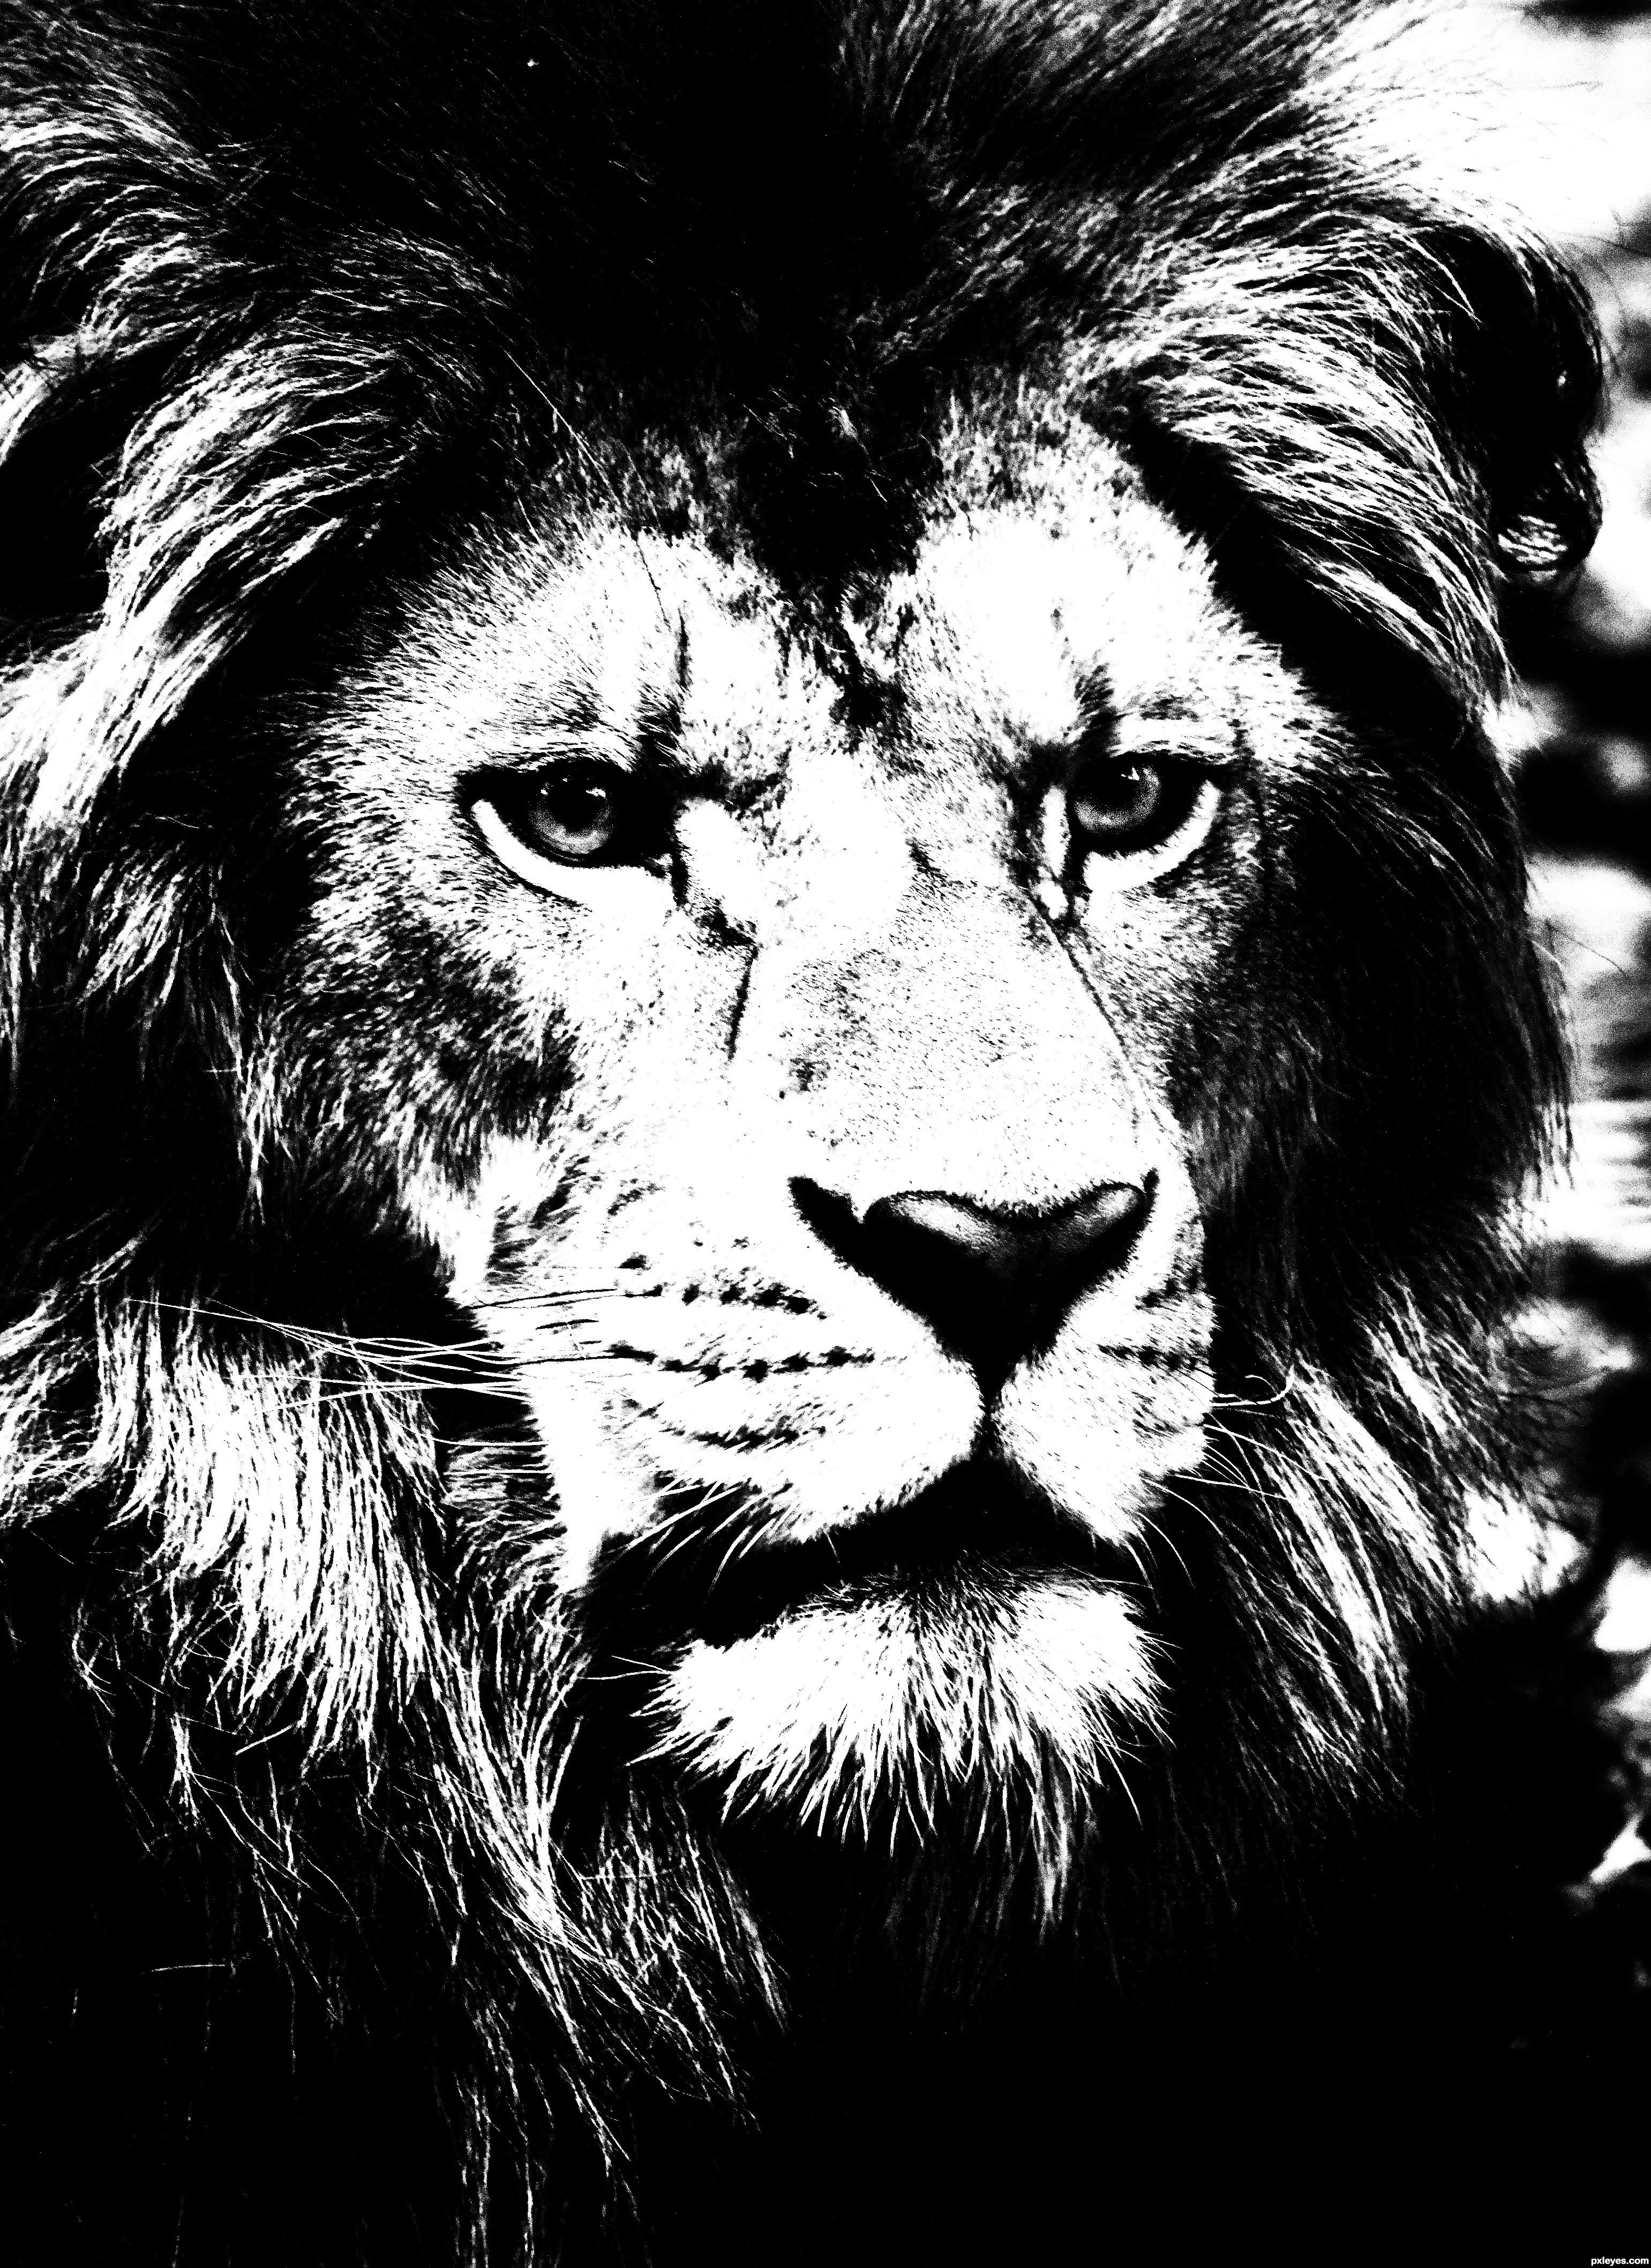 High contrast black and white image of a lion photography contests photography gallery